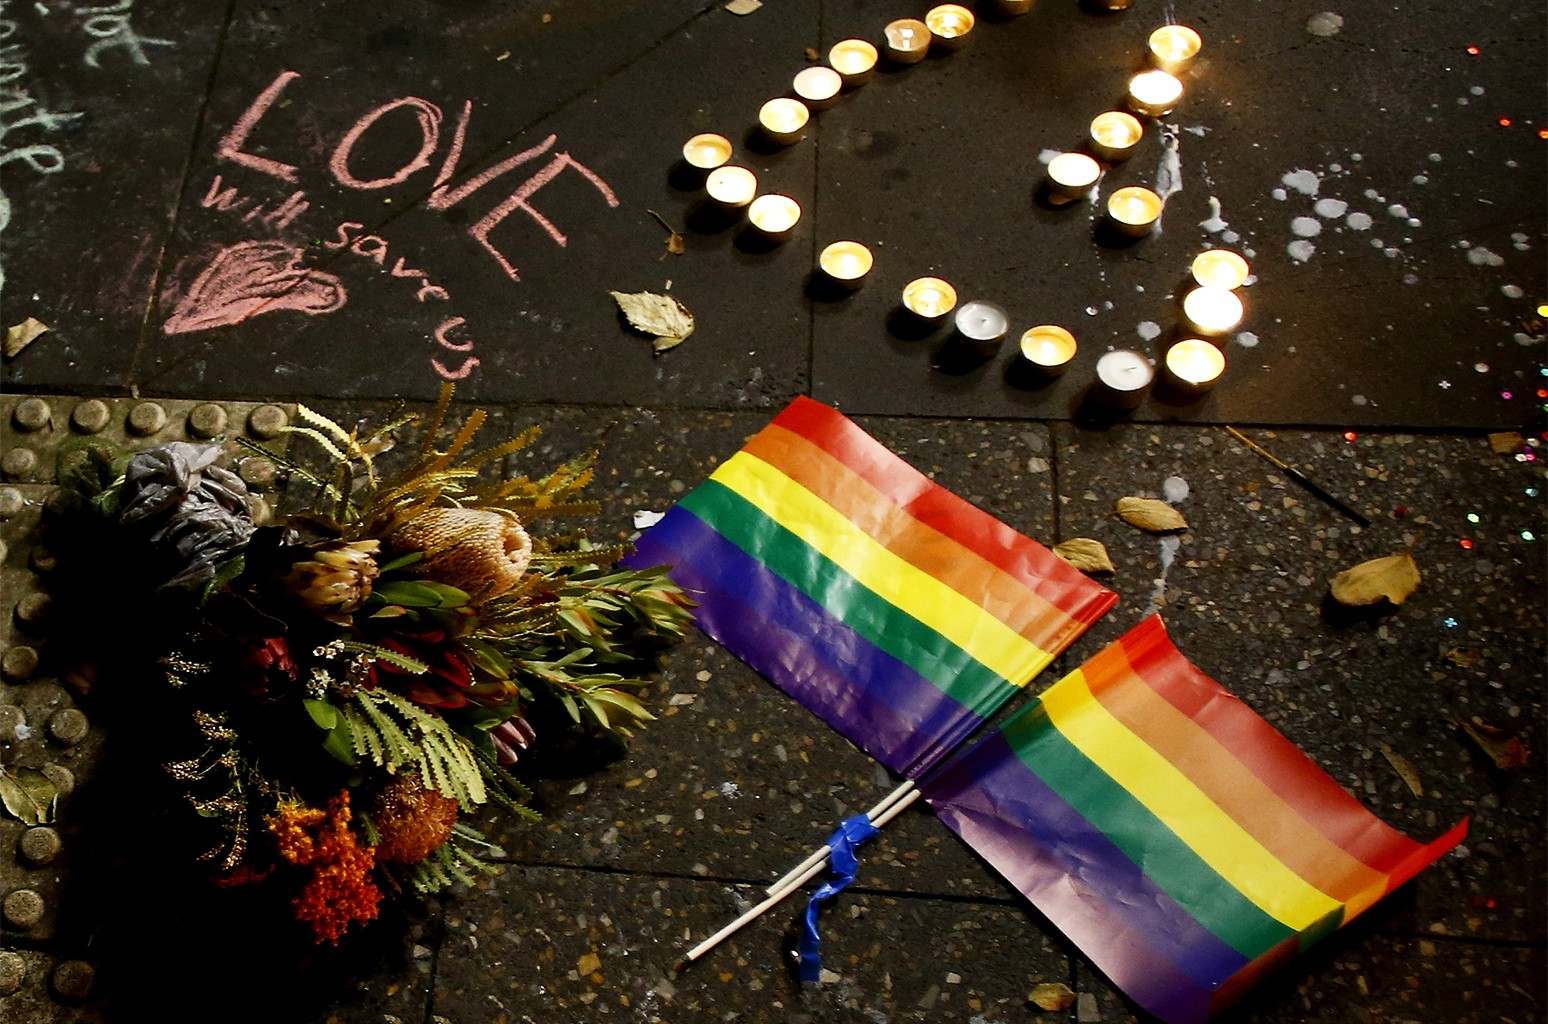 A candlelight vigil for the victims of the Pulse Nightclub shooting